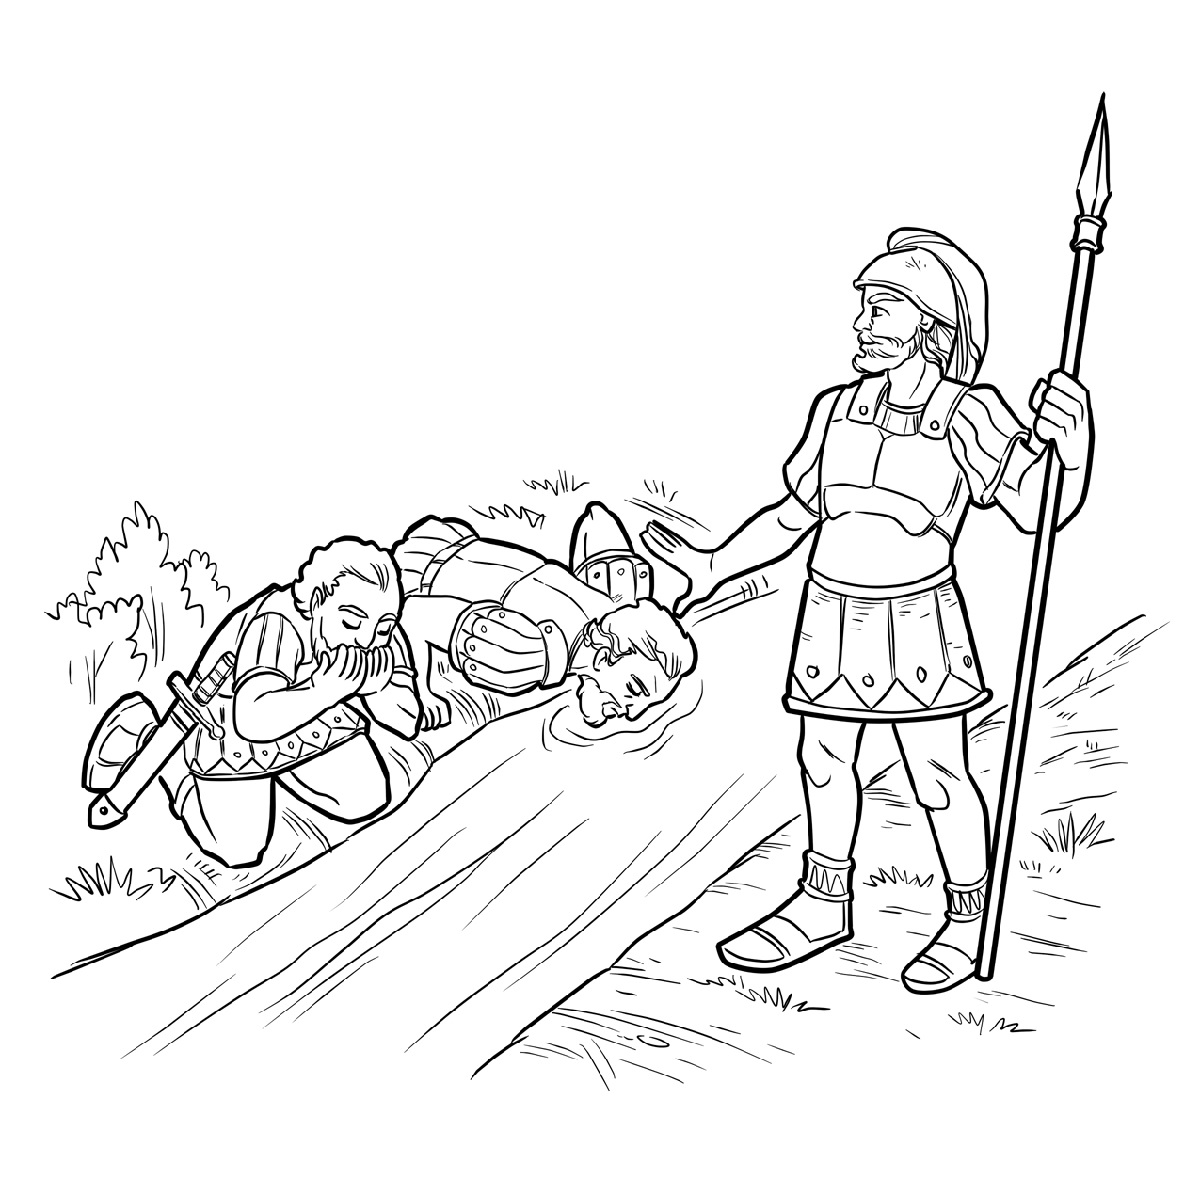 gideon coloring pages gideon selects his army of 300 men coloring page from coloring pages gideon